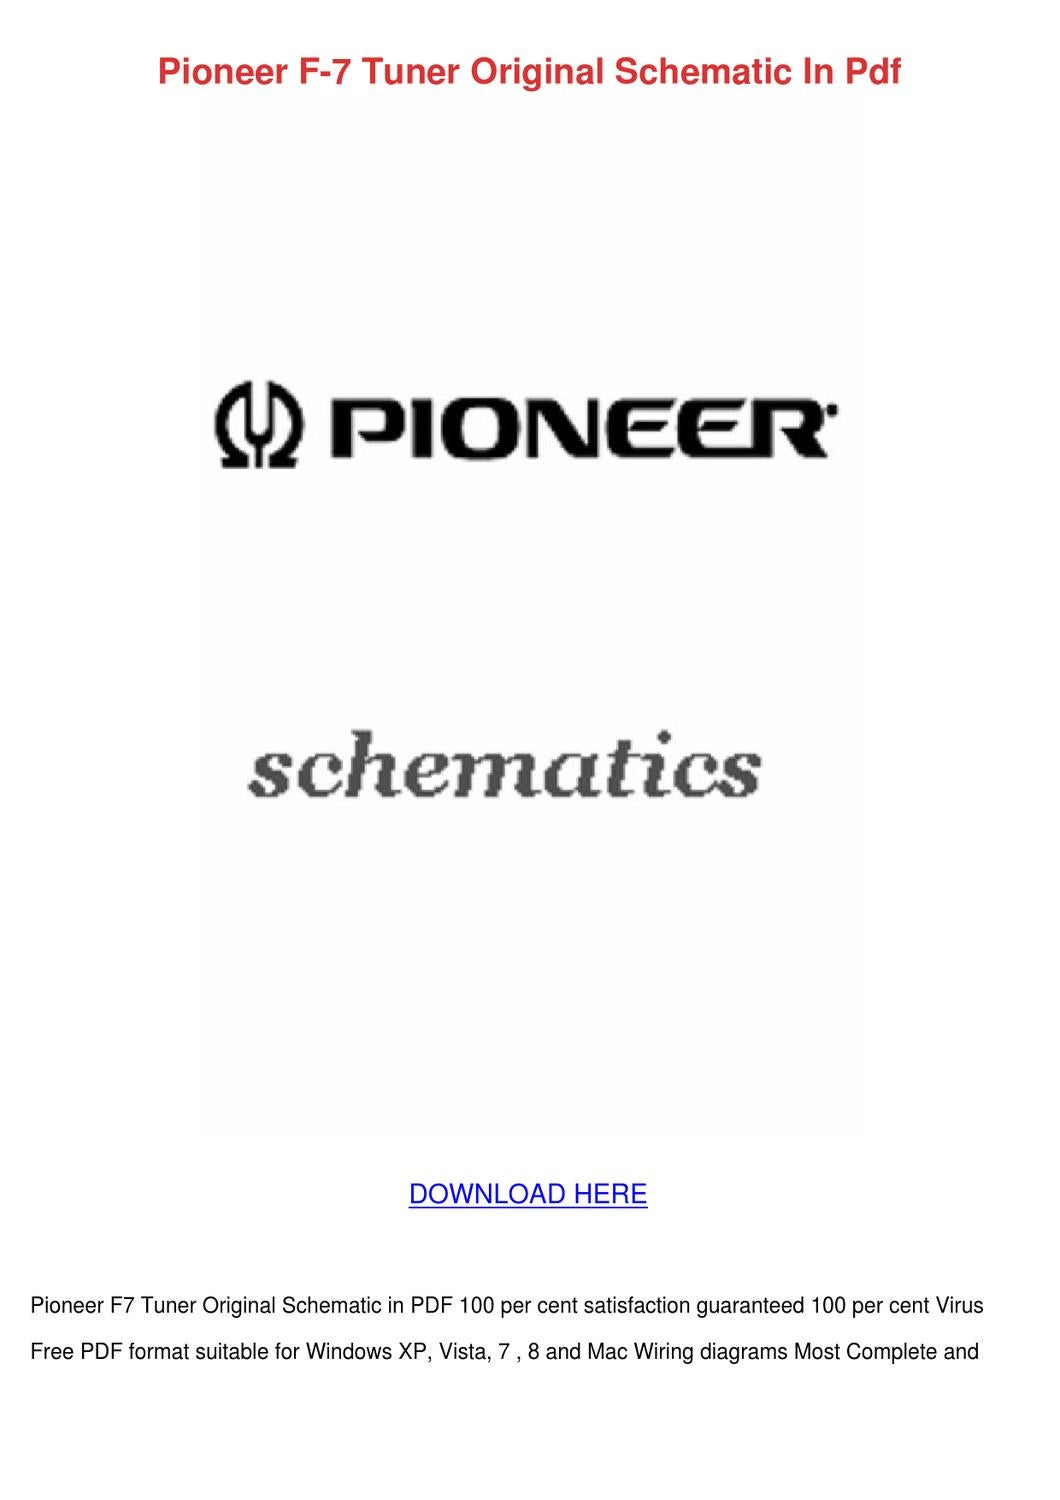 Pioneer F 7 Tuner Original Schematic In Pdf By Taylorslocum Issuu Download The Format